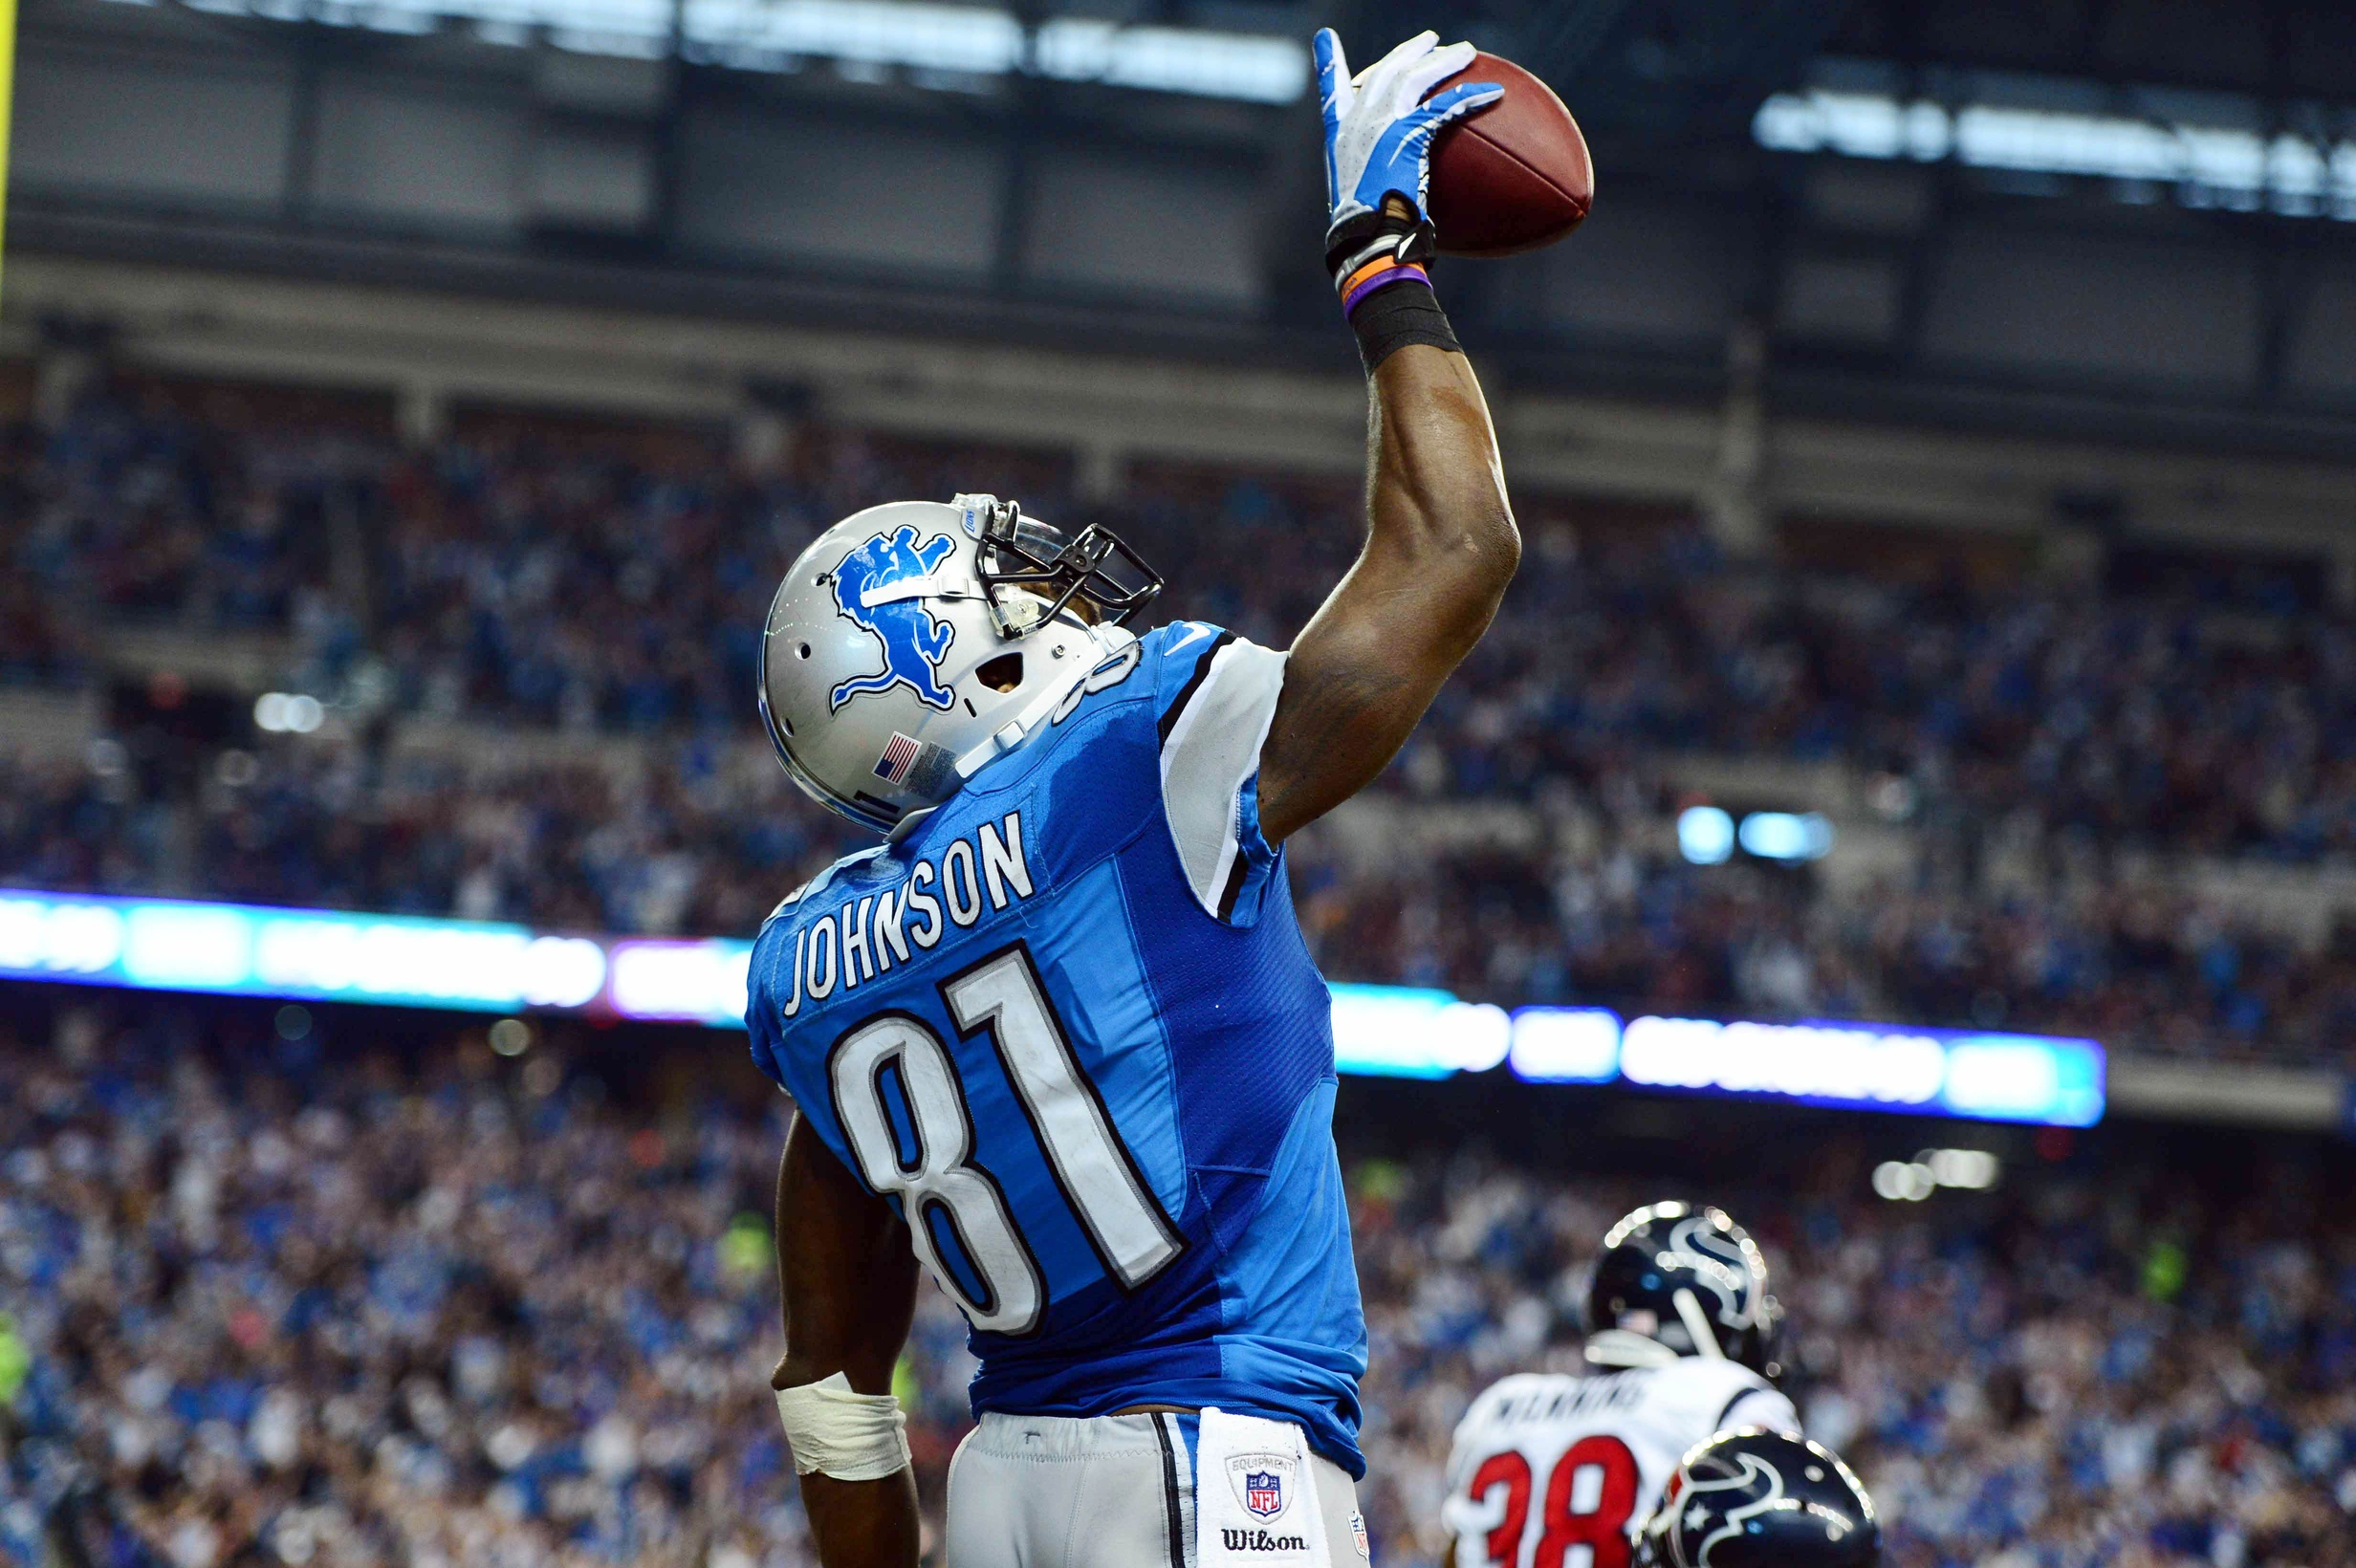 Cowboys Blog - Fantasy Football: Top 10 WR's for Week 2 9